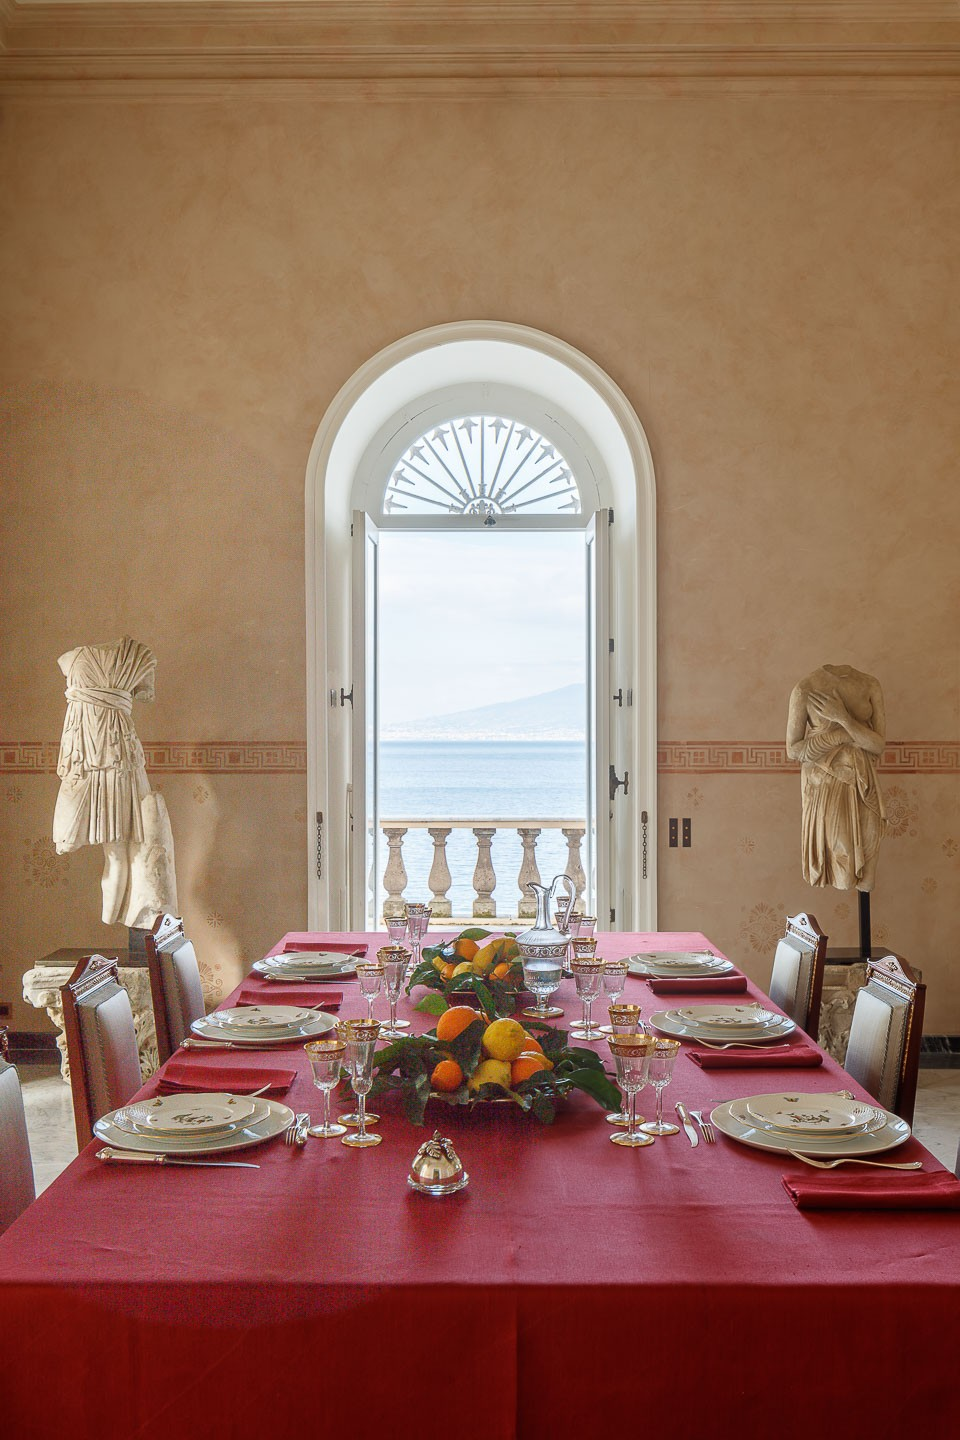 Villa Astor best exquisite dinning room marble table luxury linen glasses table setting decor decoration Italian fruit wine food breathtaking view The Heritage Collection